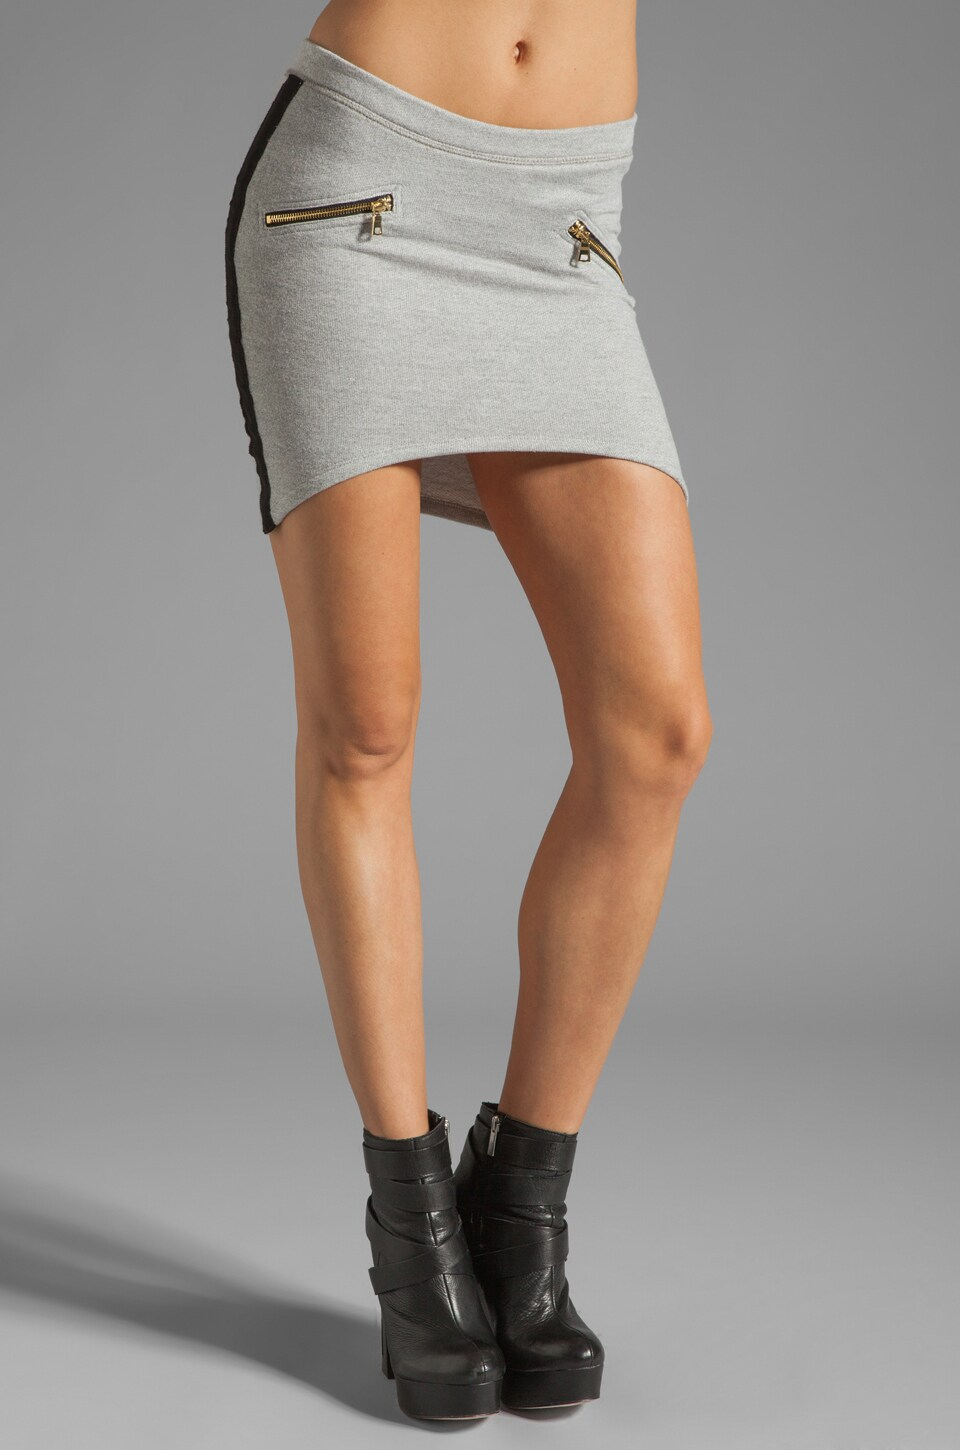 Pencey Standard Zipper Skirt in Grey